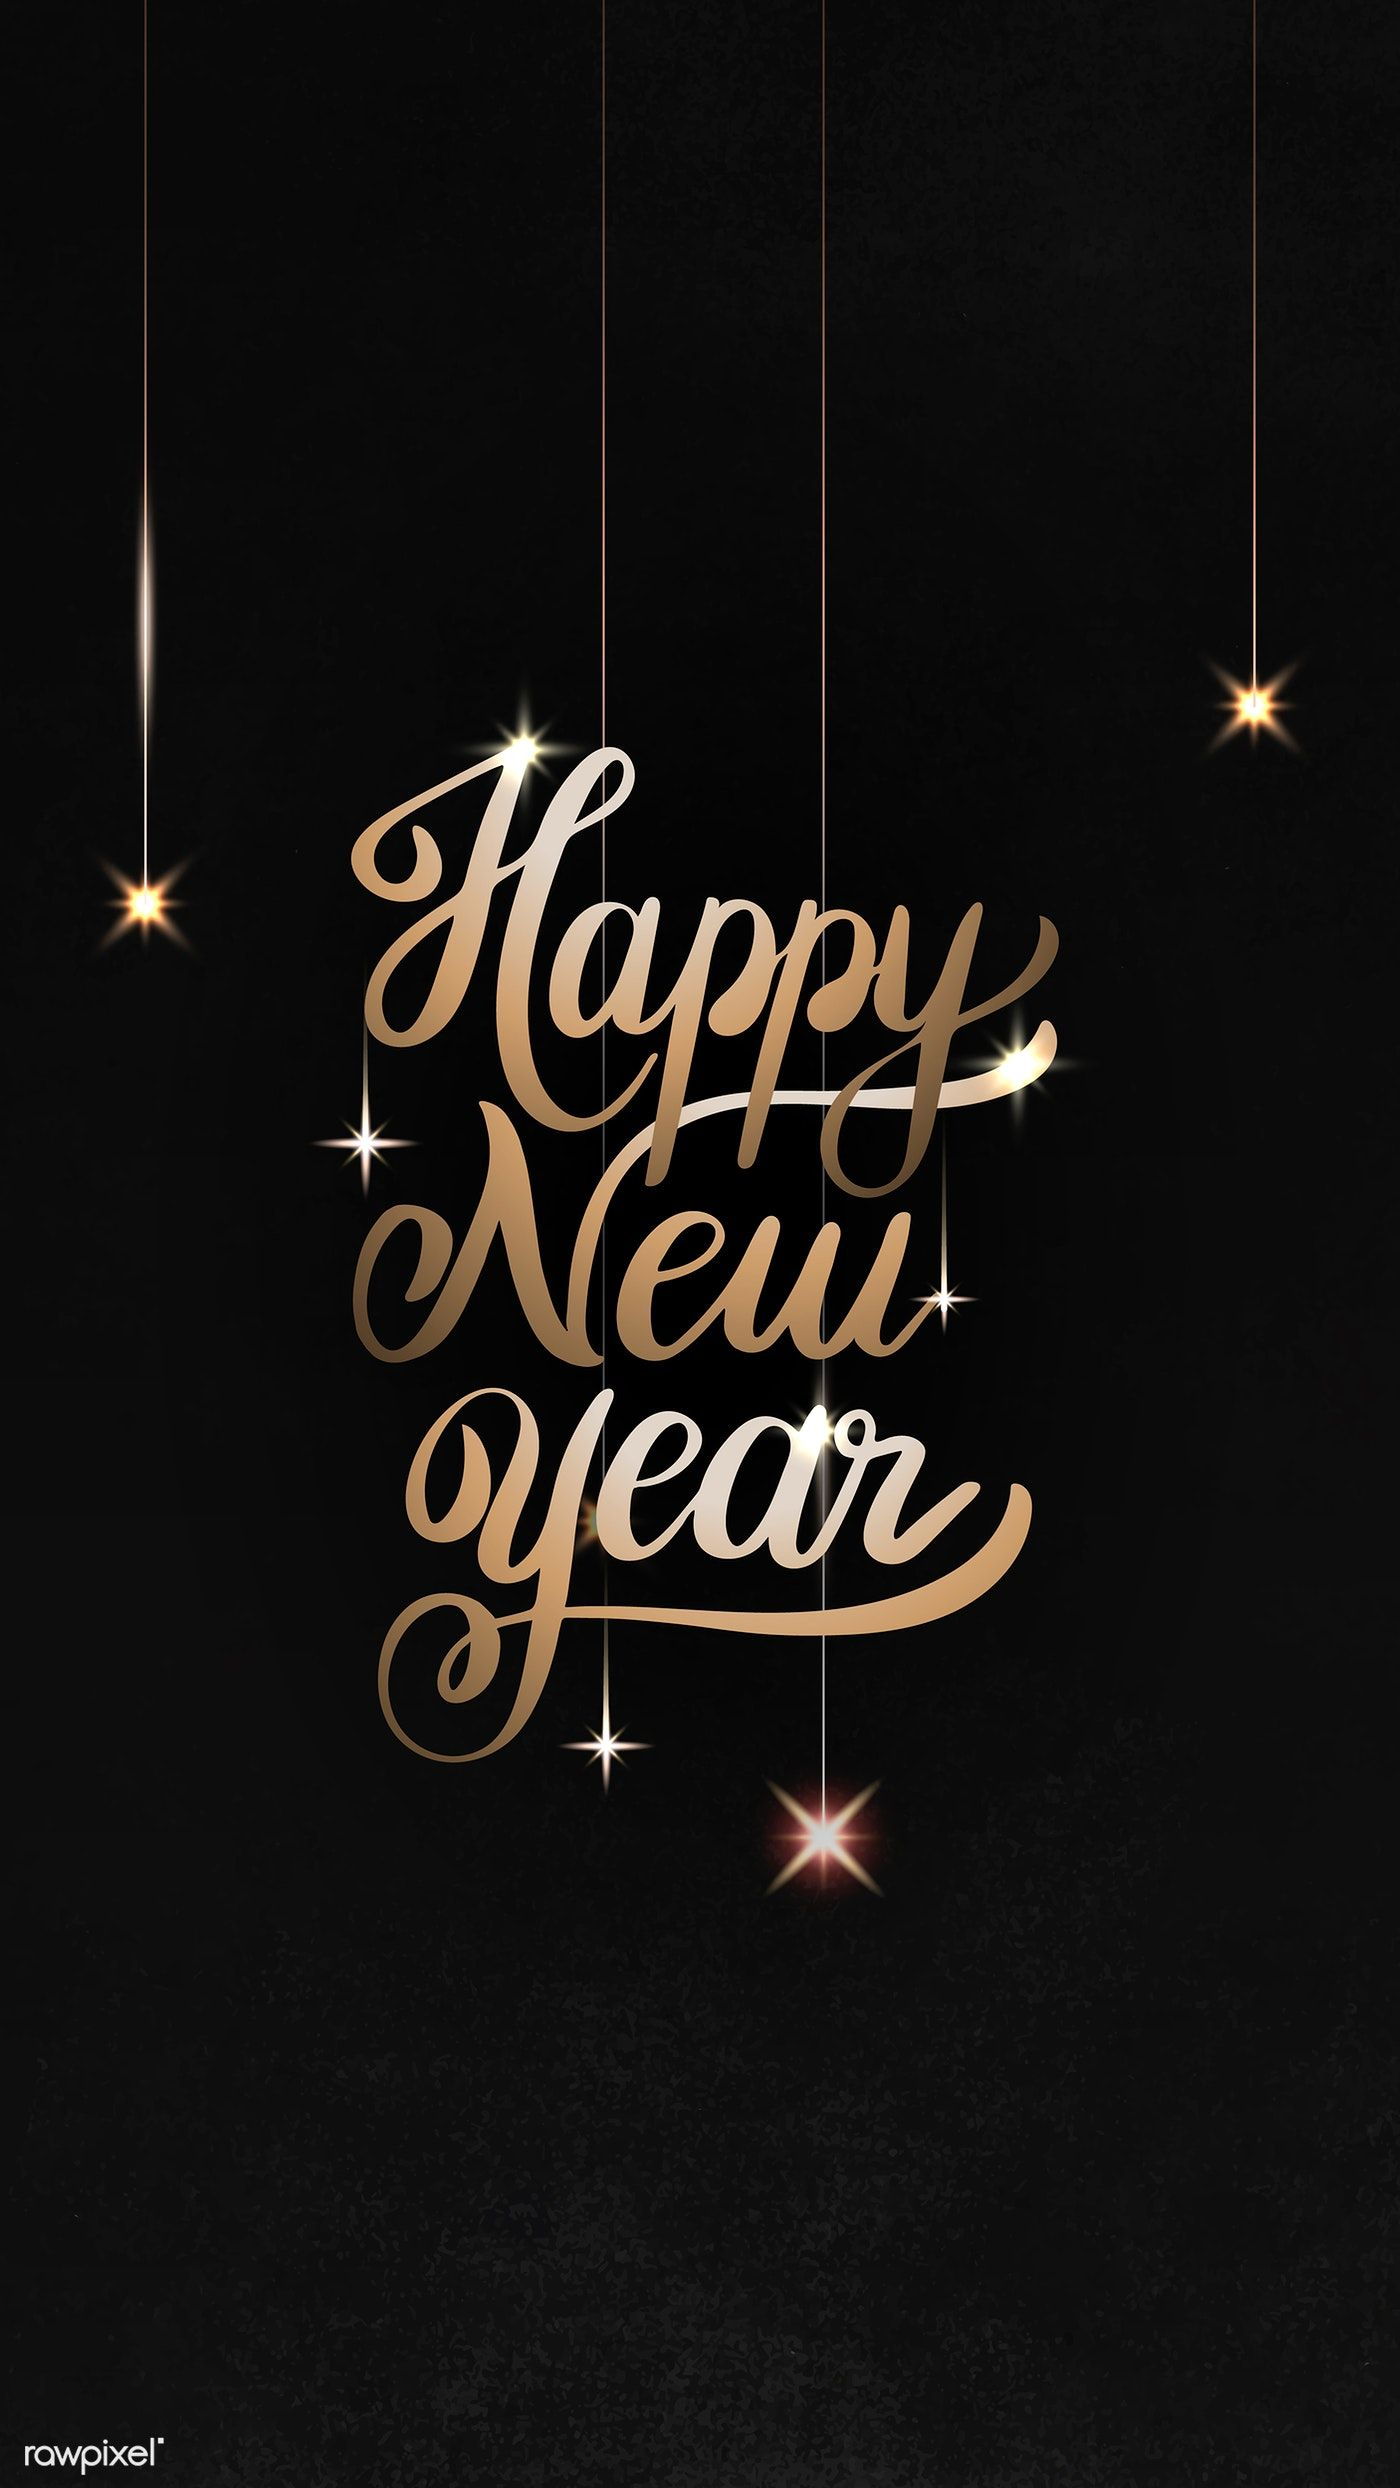 Download Premium Vector Of Happy New Year Black Greeting Card Template Happy New Year Images Happy New Year Greetings New Year Wishes